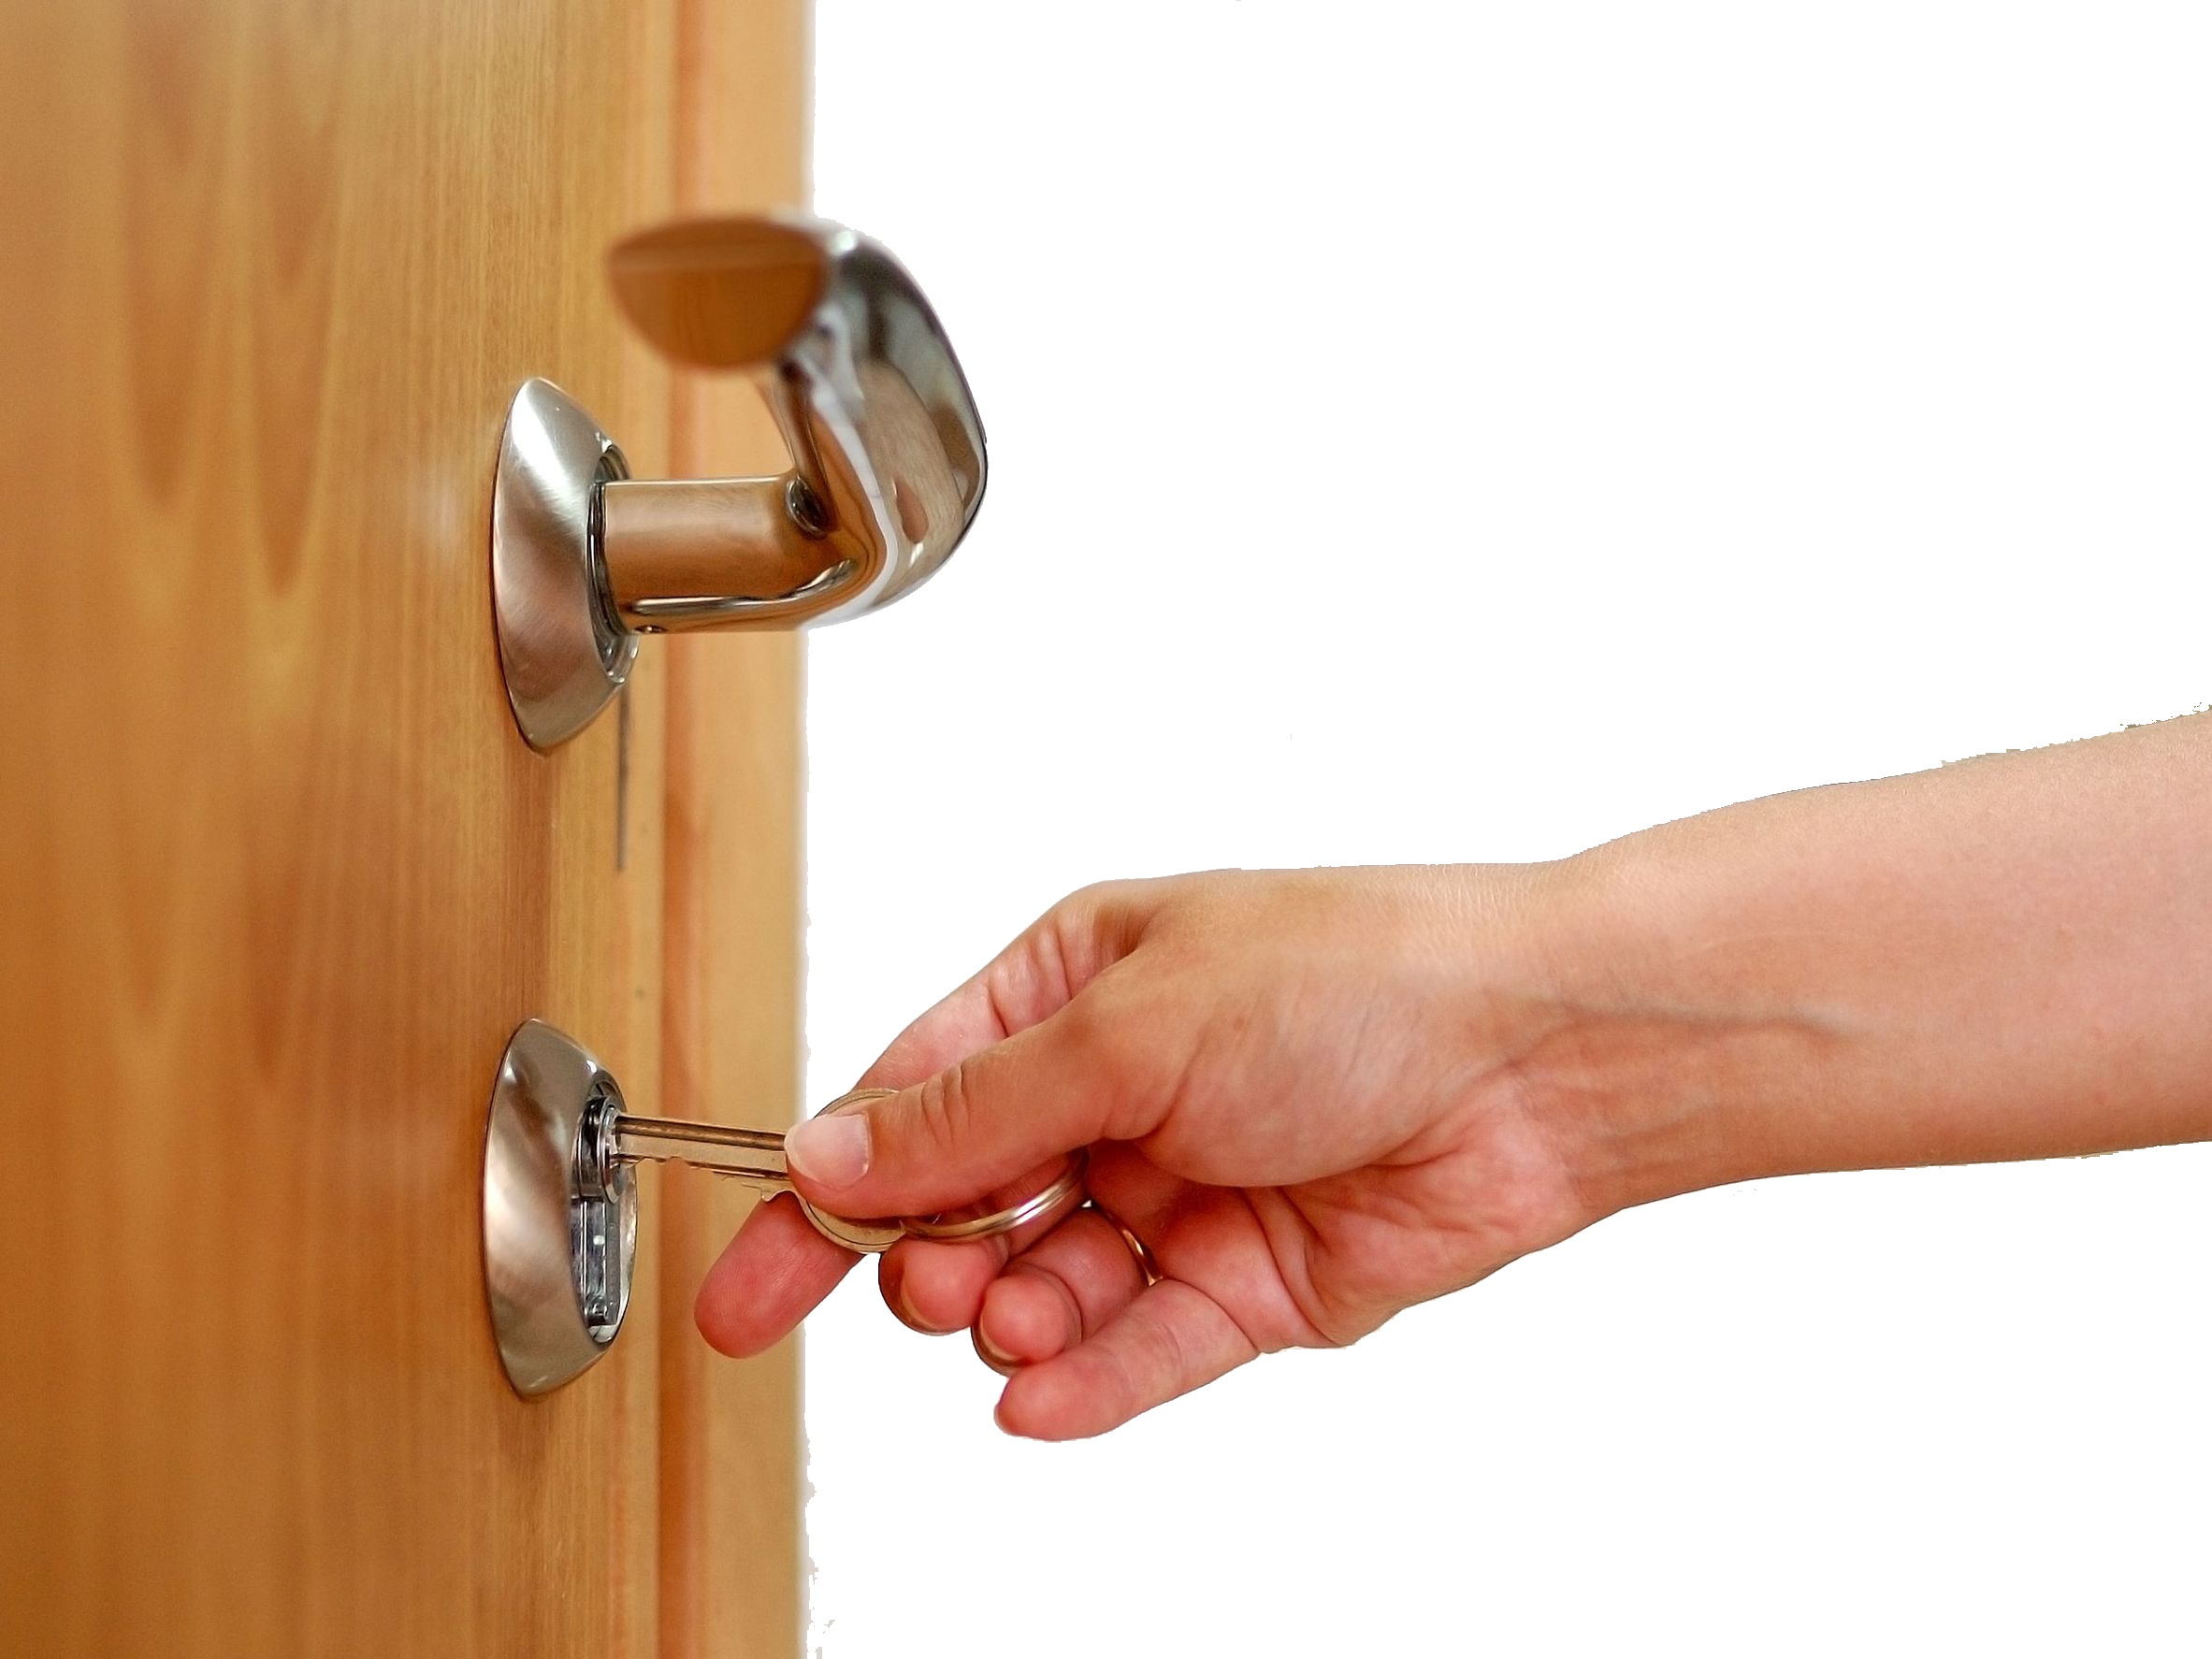 locksmith services authorized locksmiths